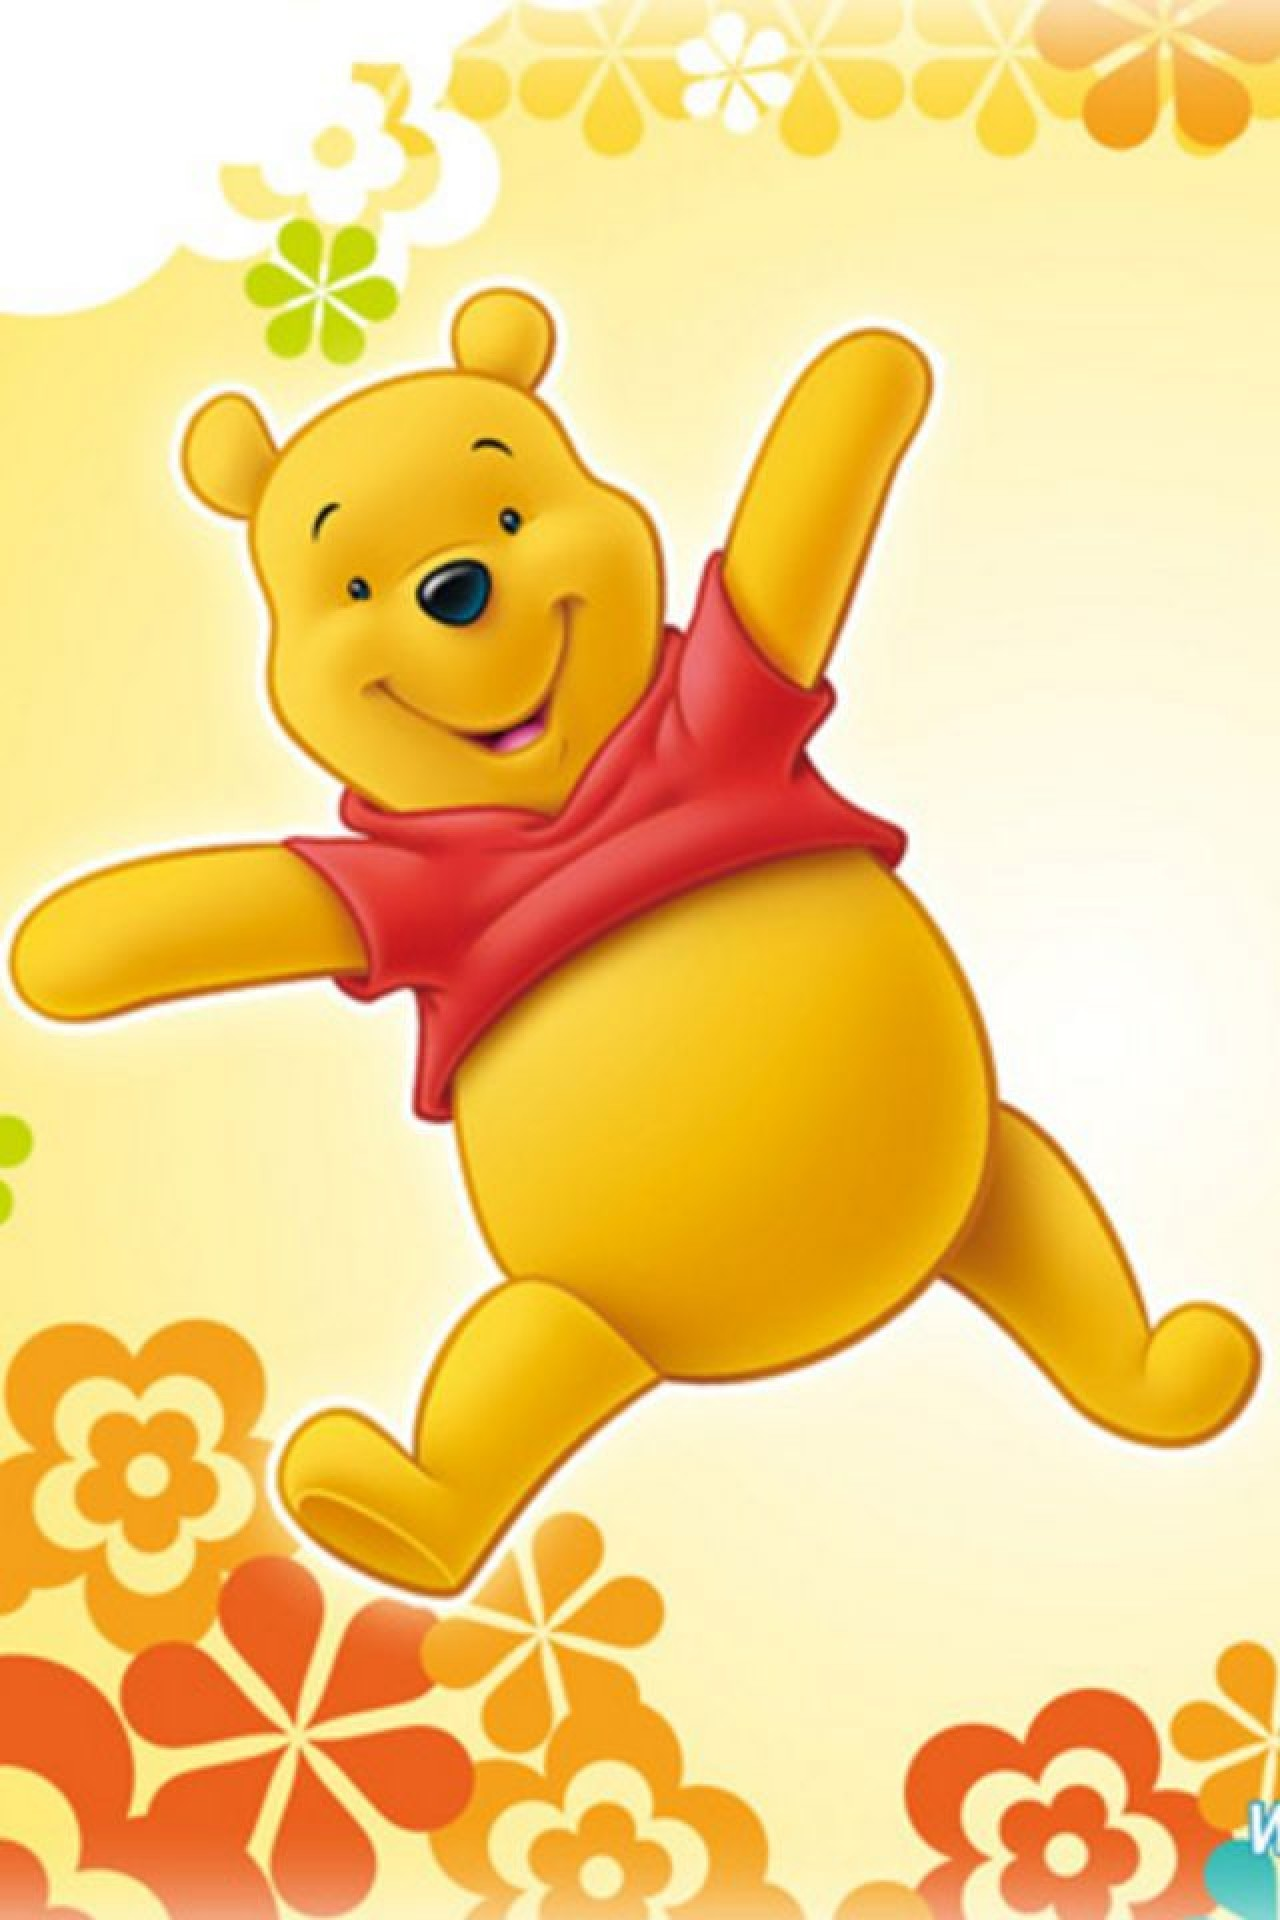 It is an image of Mesmerizing Pooh Bear Images